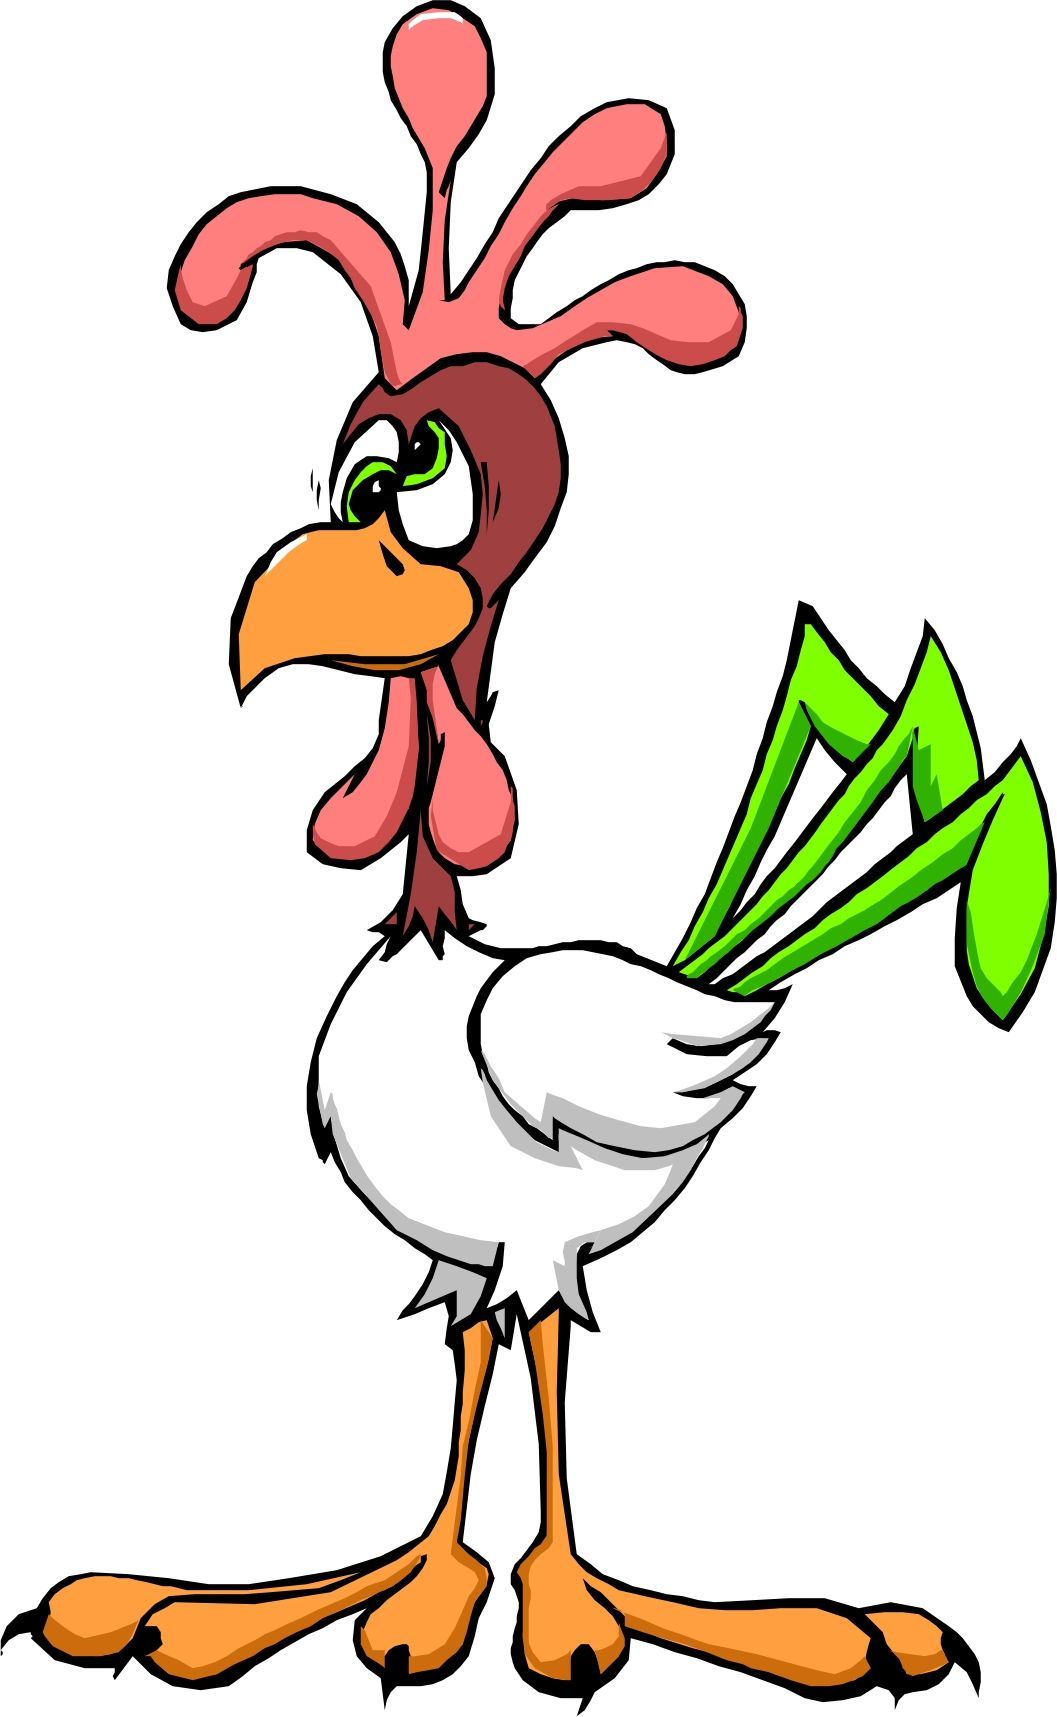 cartoon chickens clipart best backgrounds clipart images etc rh pinterest co uk free chicken pictures clip art chicken wings pictures clip art